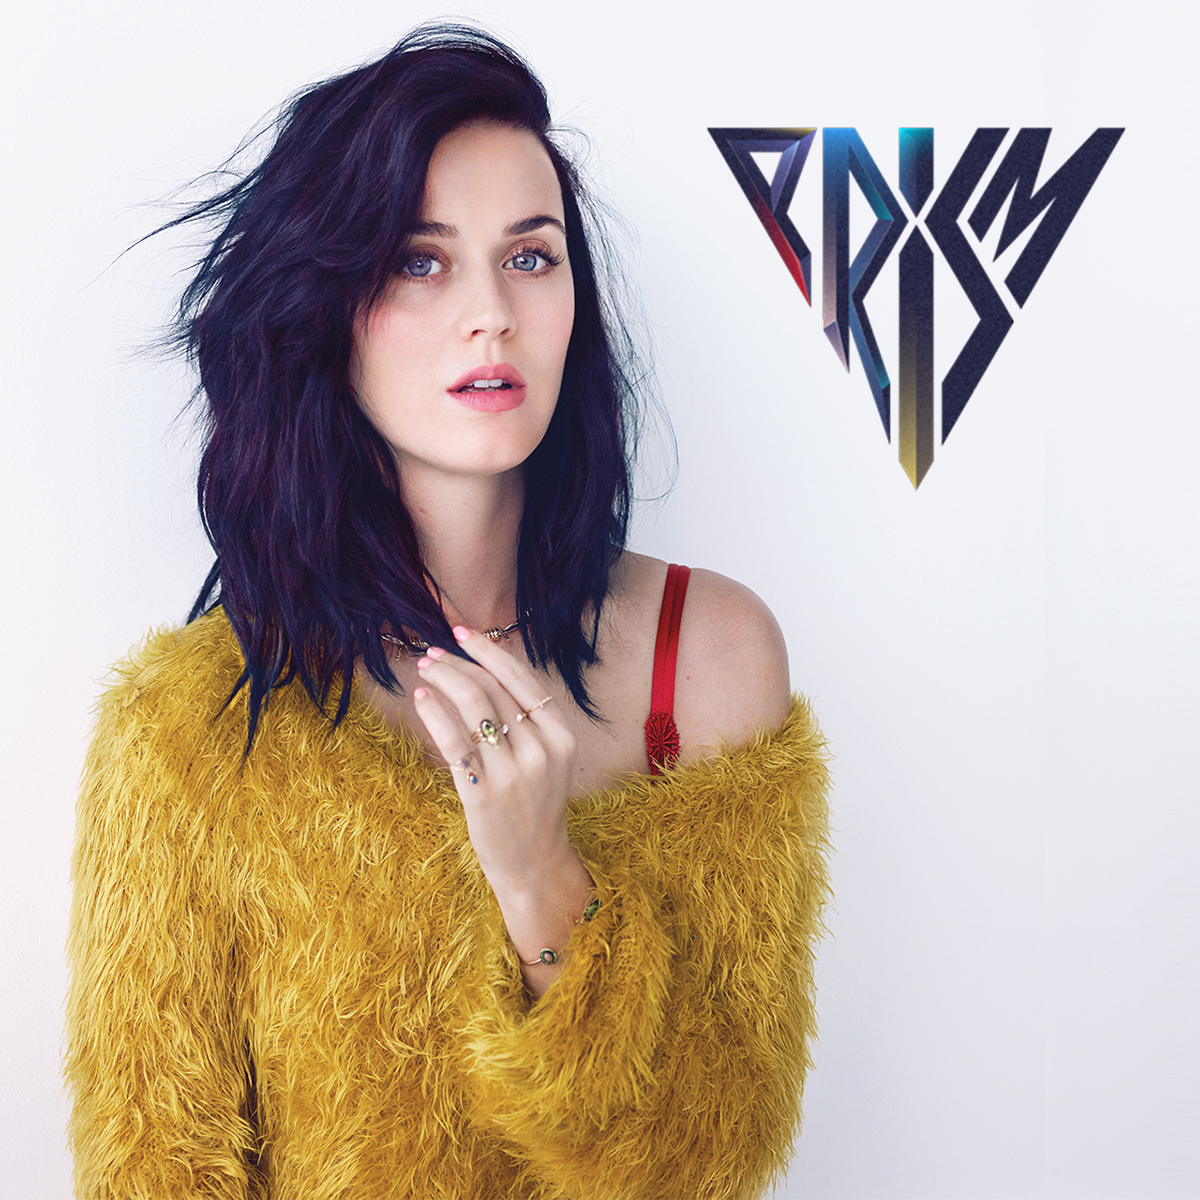 Katy Perry Album Cover Prism